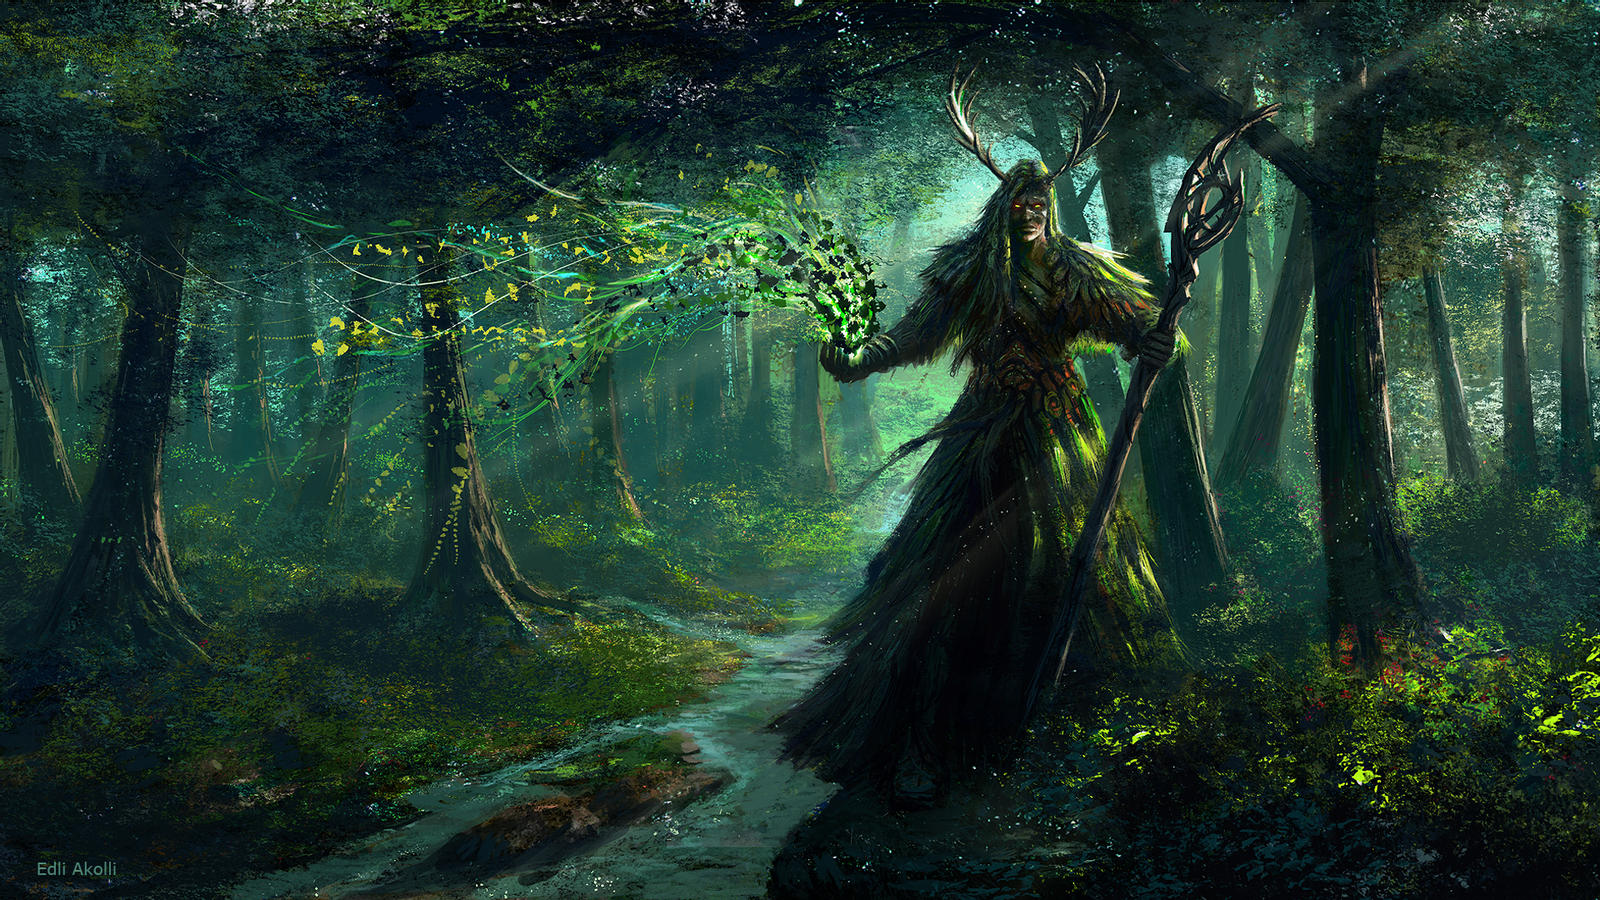 druid_by_edli_d2zocxe-fullview